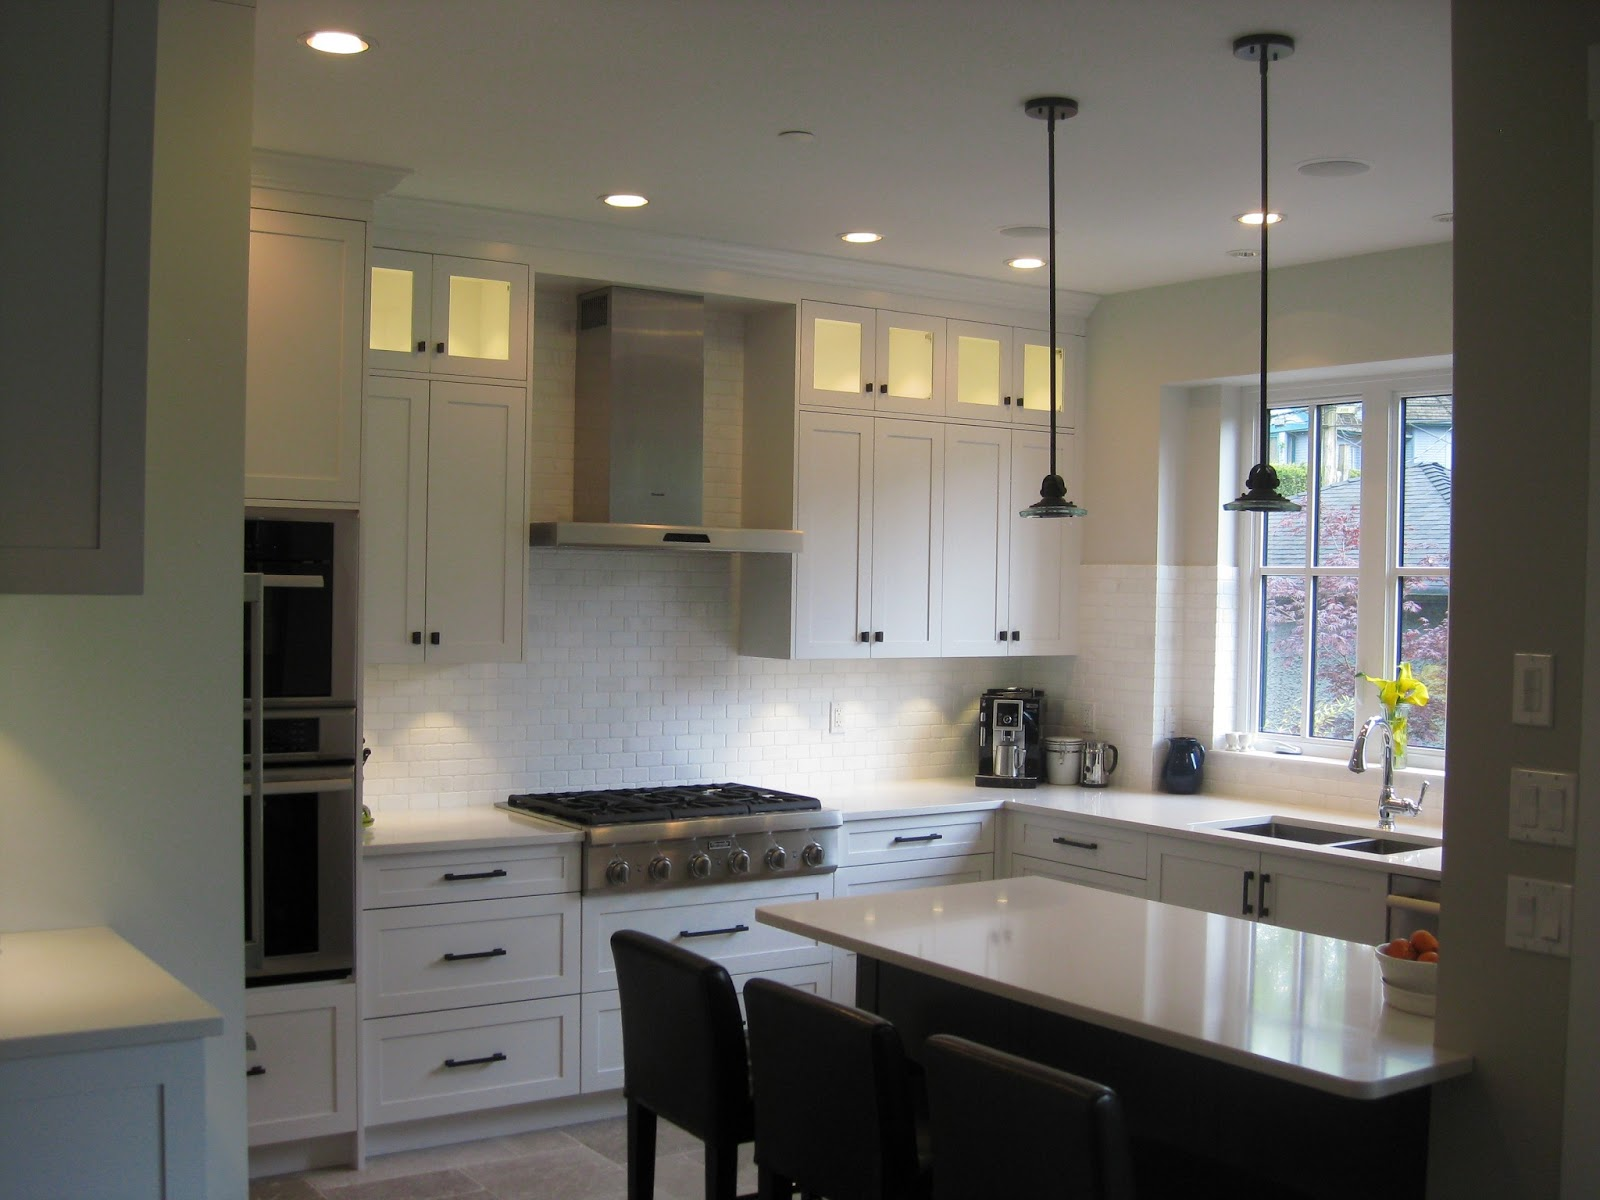 Painted While Kitchen With White Oak Peninsula